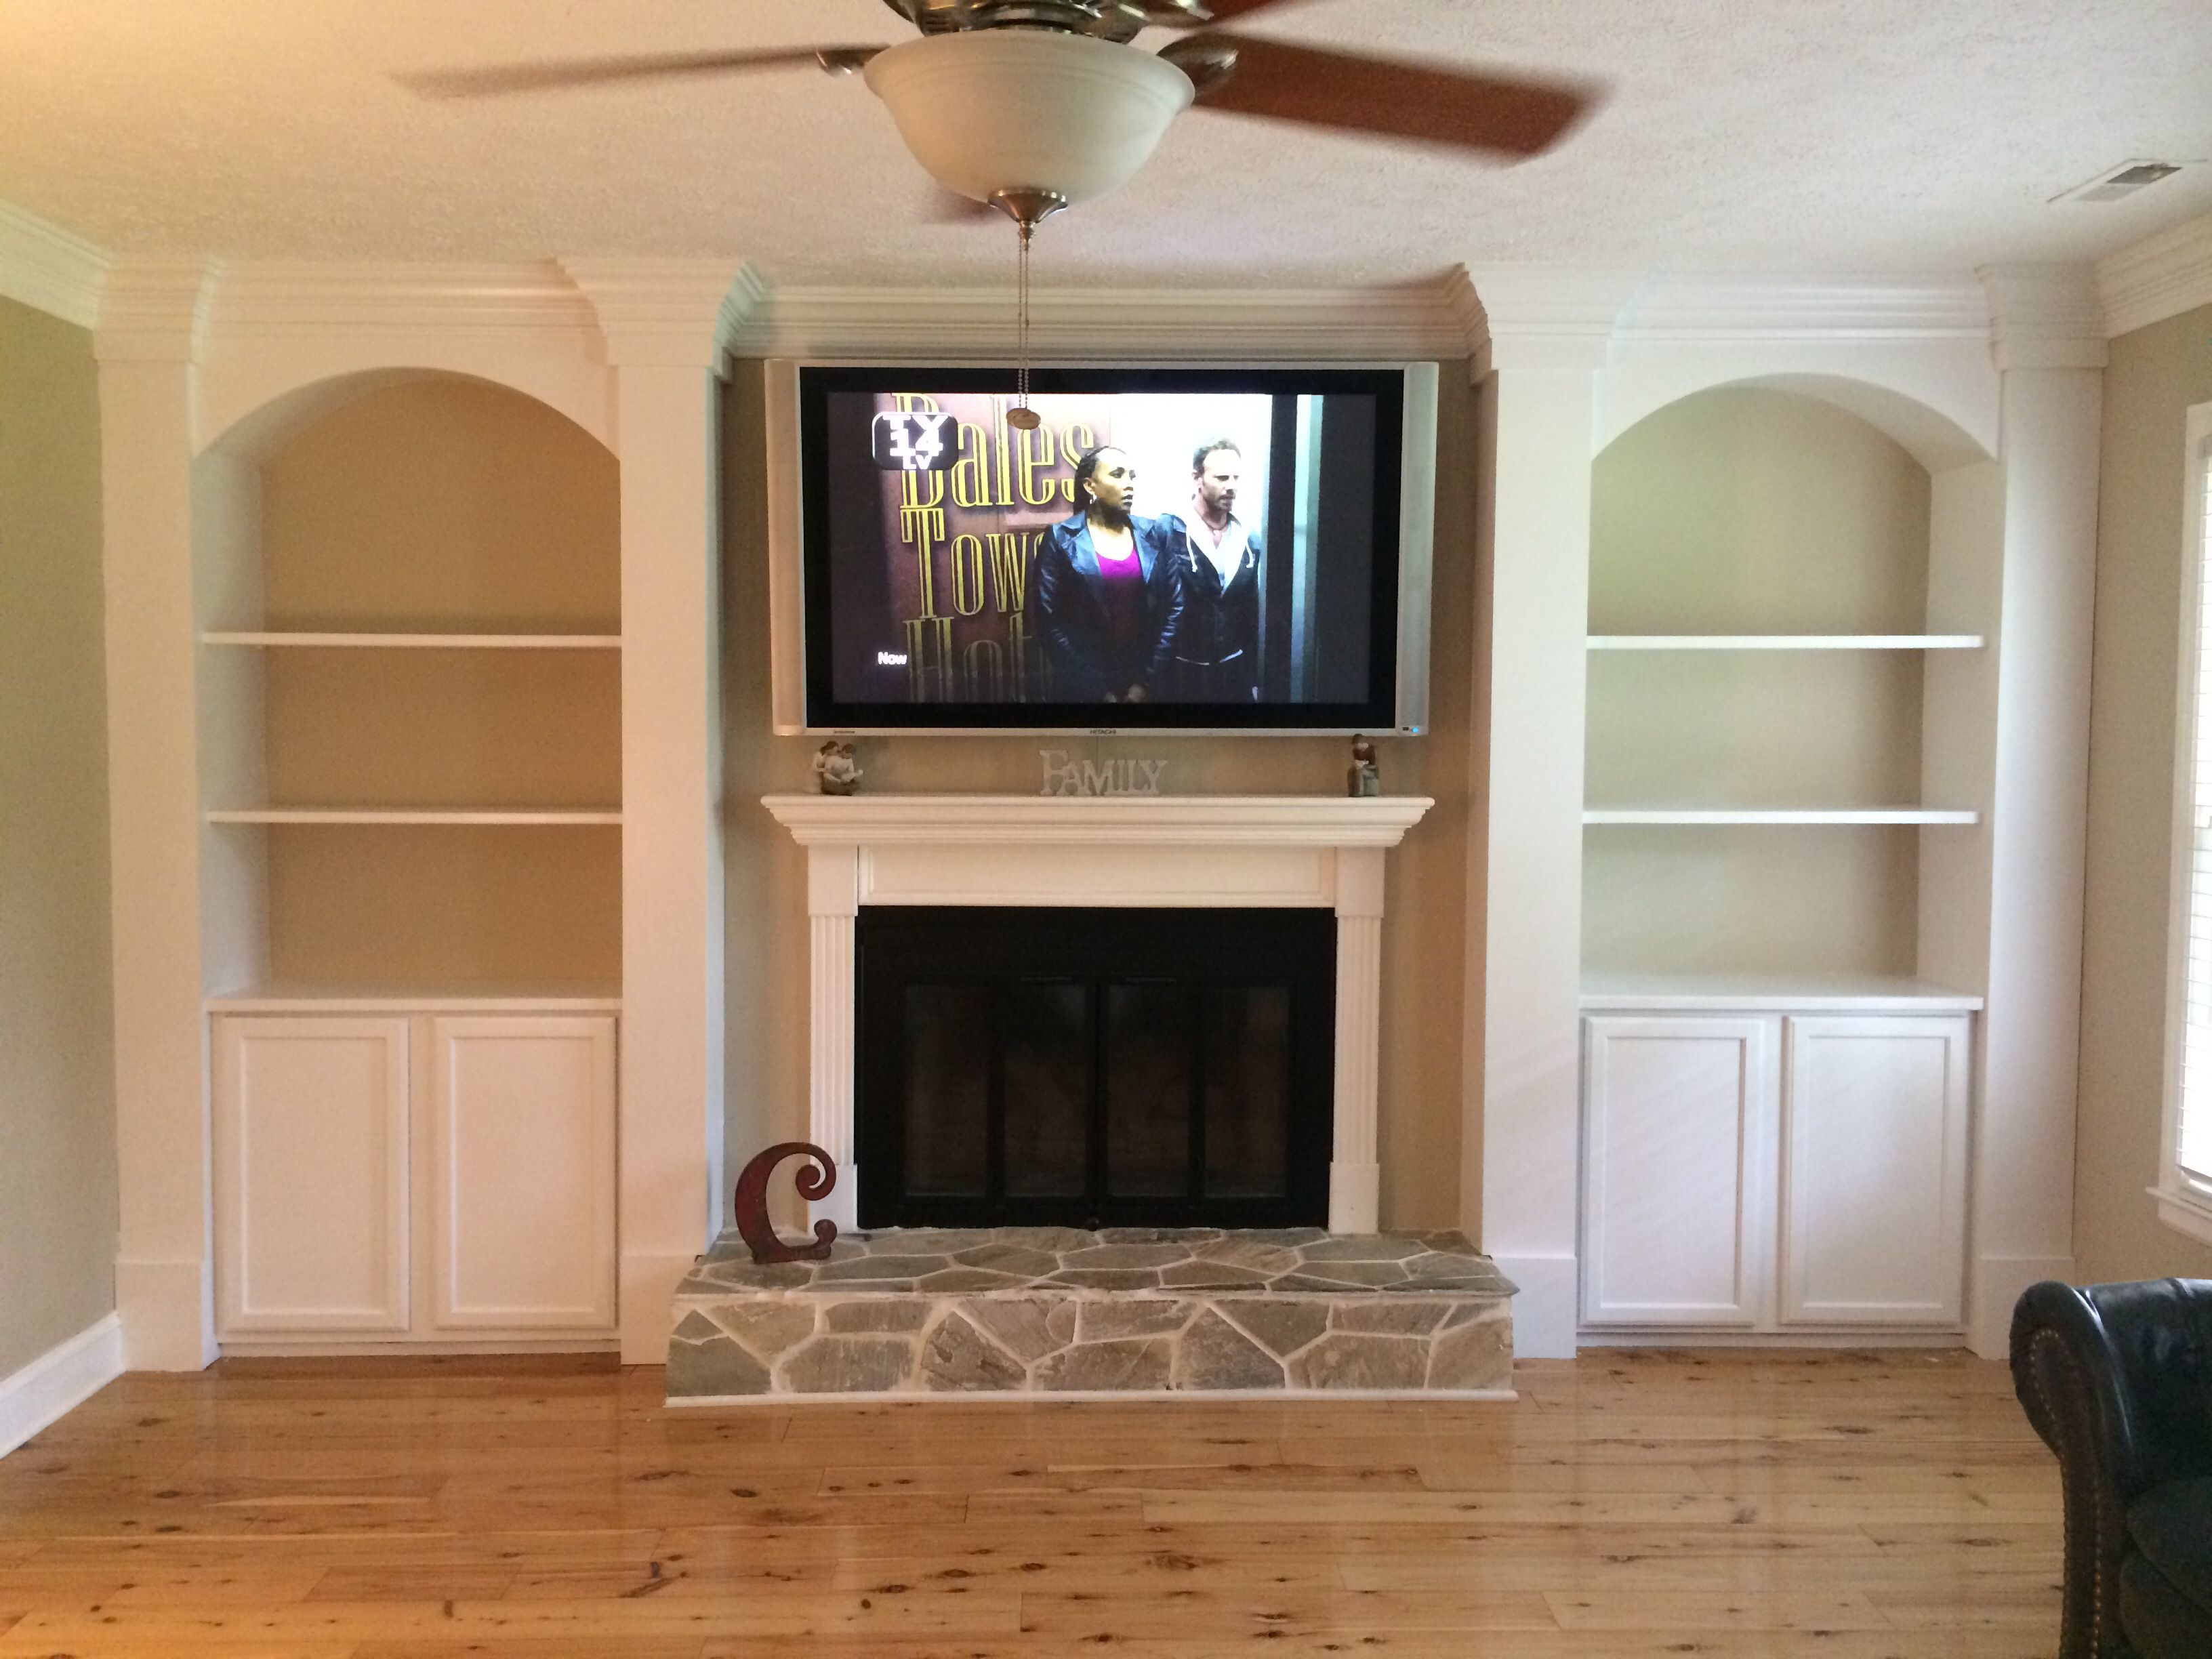 Superior Cabinet And Shelves Beside Fireplace.